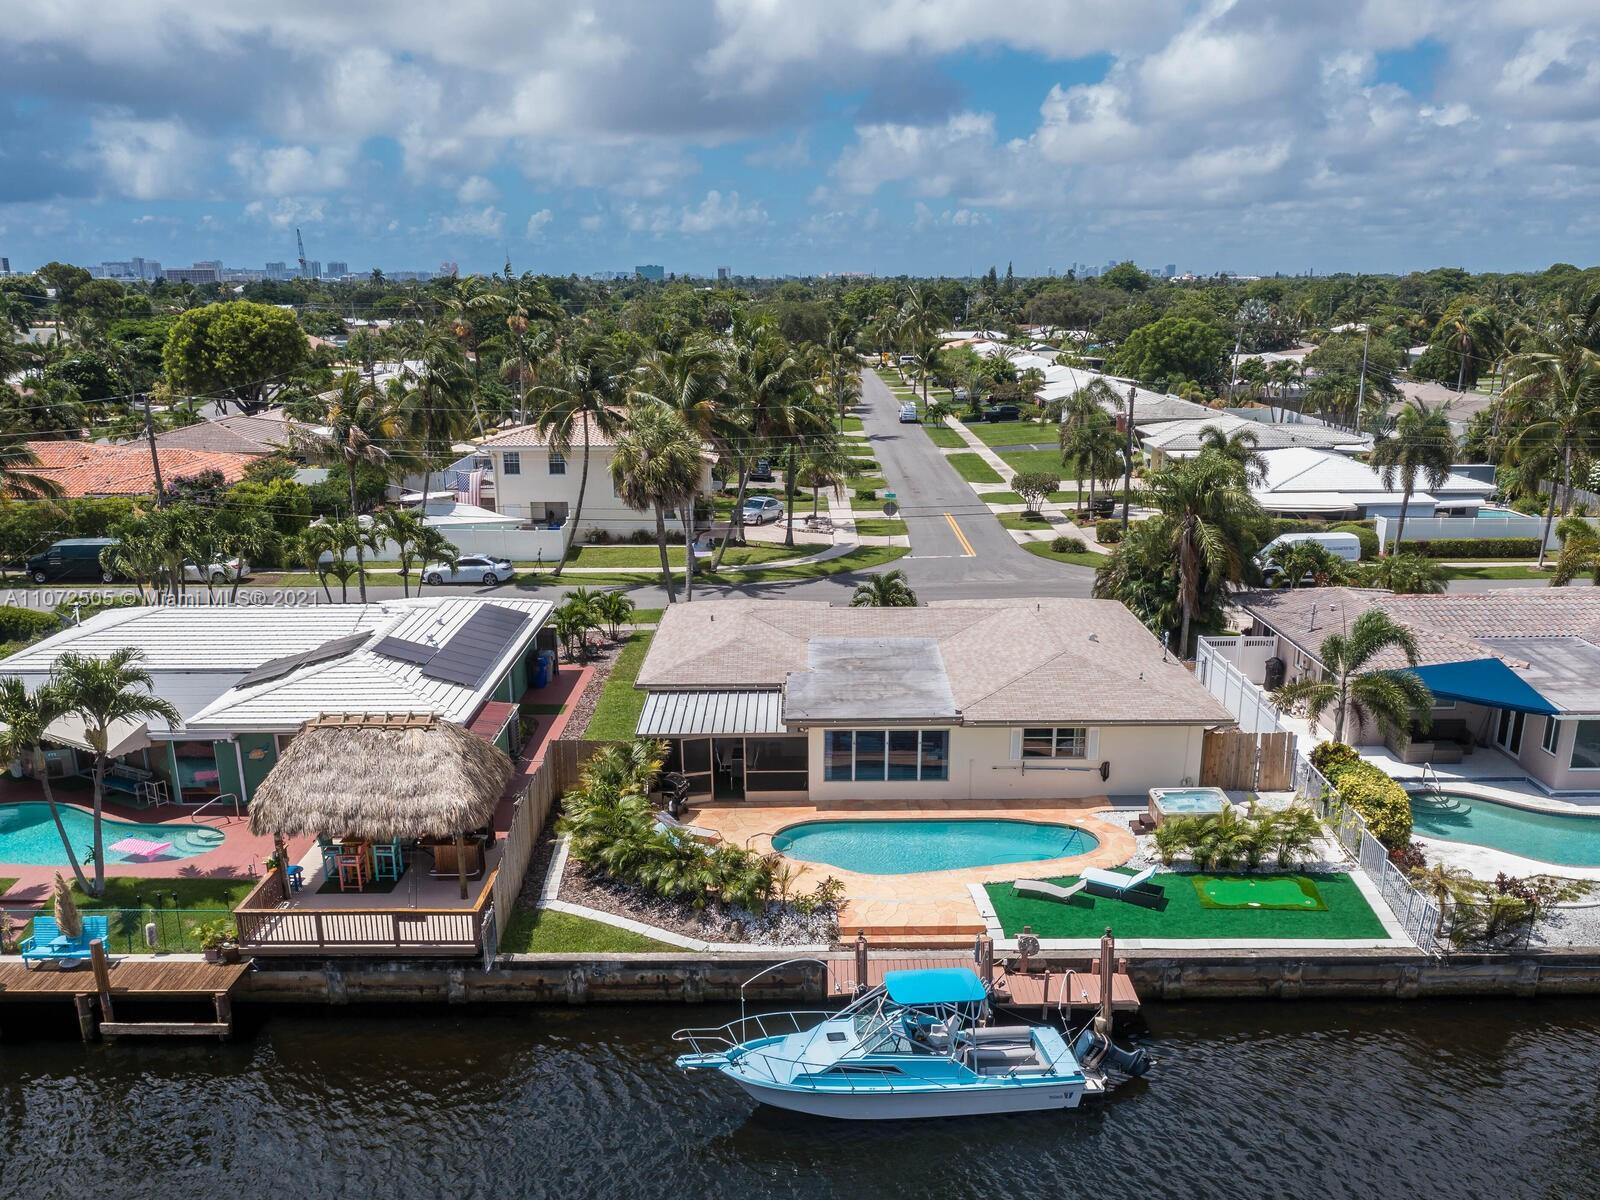 Property for sale at 271 SE 4th St, Pompano Beach,  Florida 33060